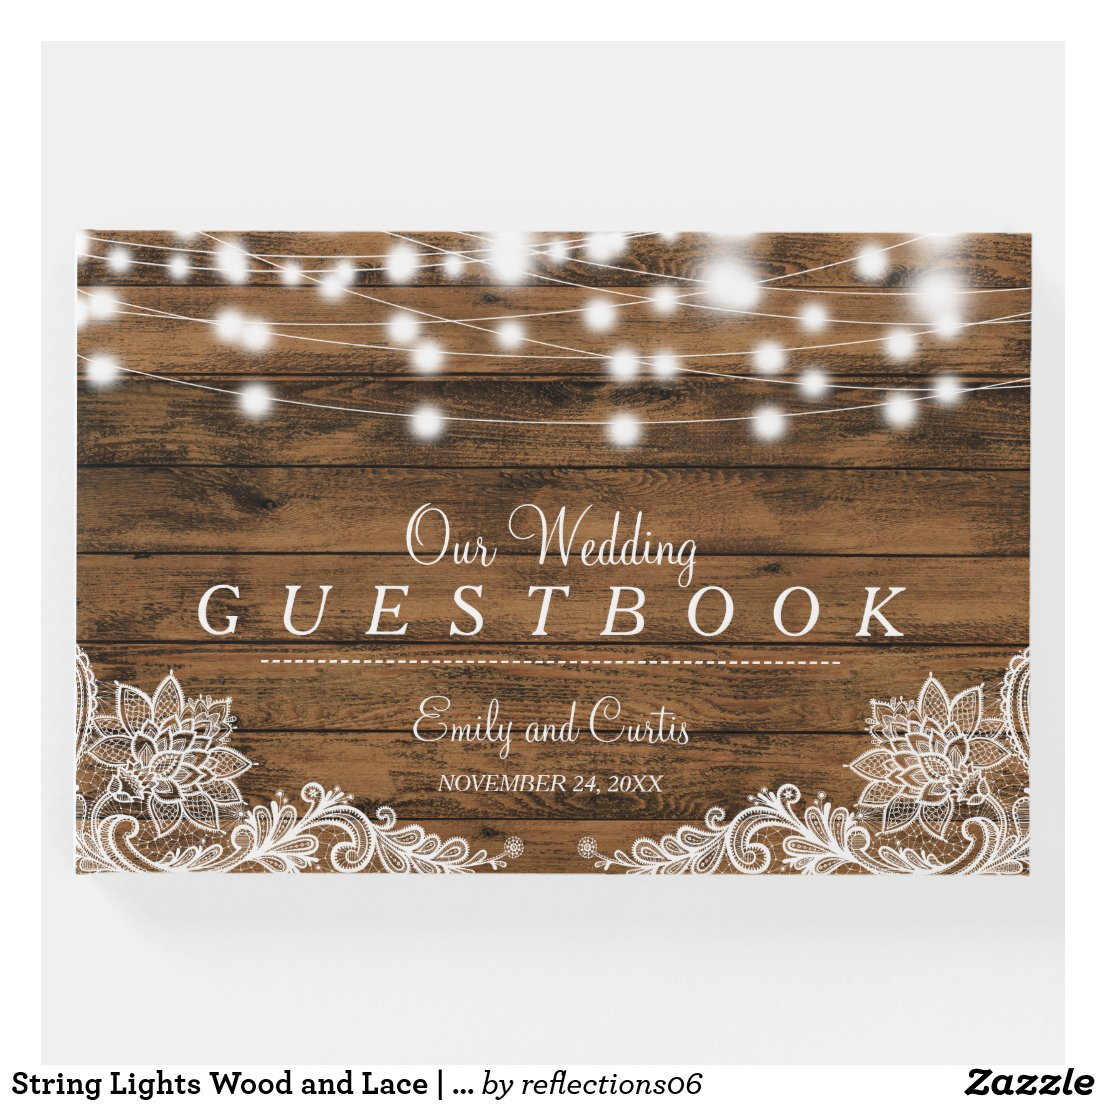 String Lights Wood and Lace | Wedding Guest Book